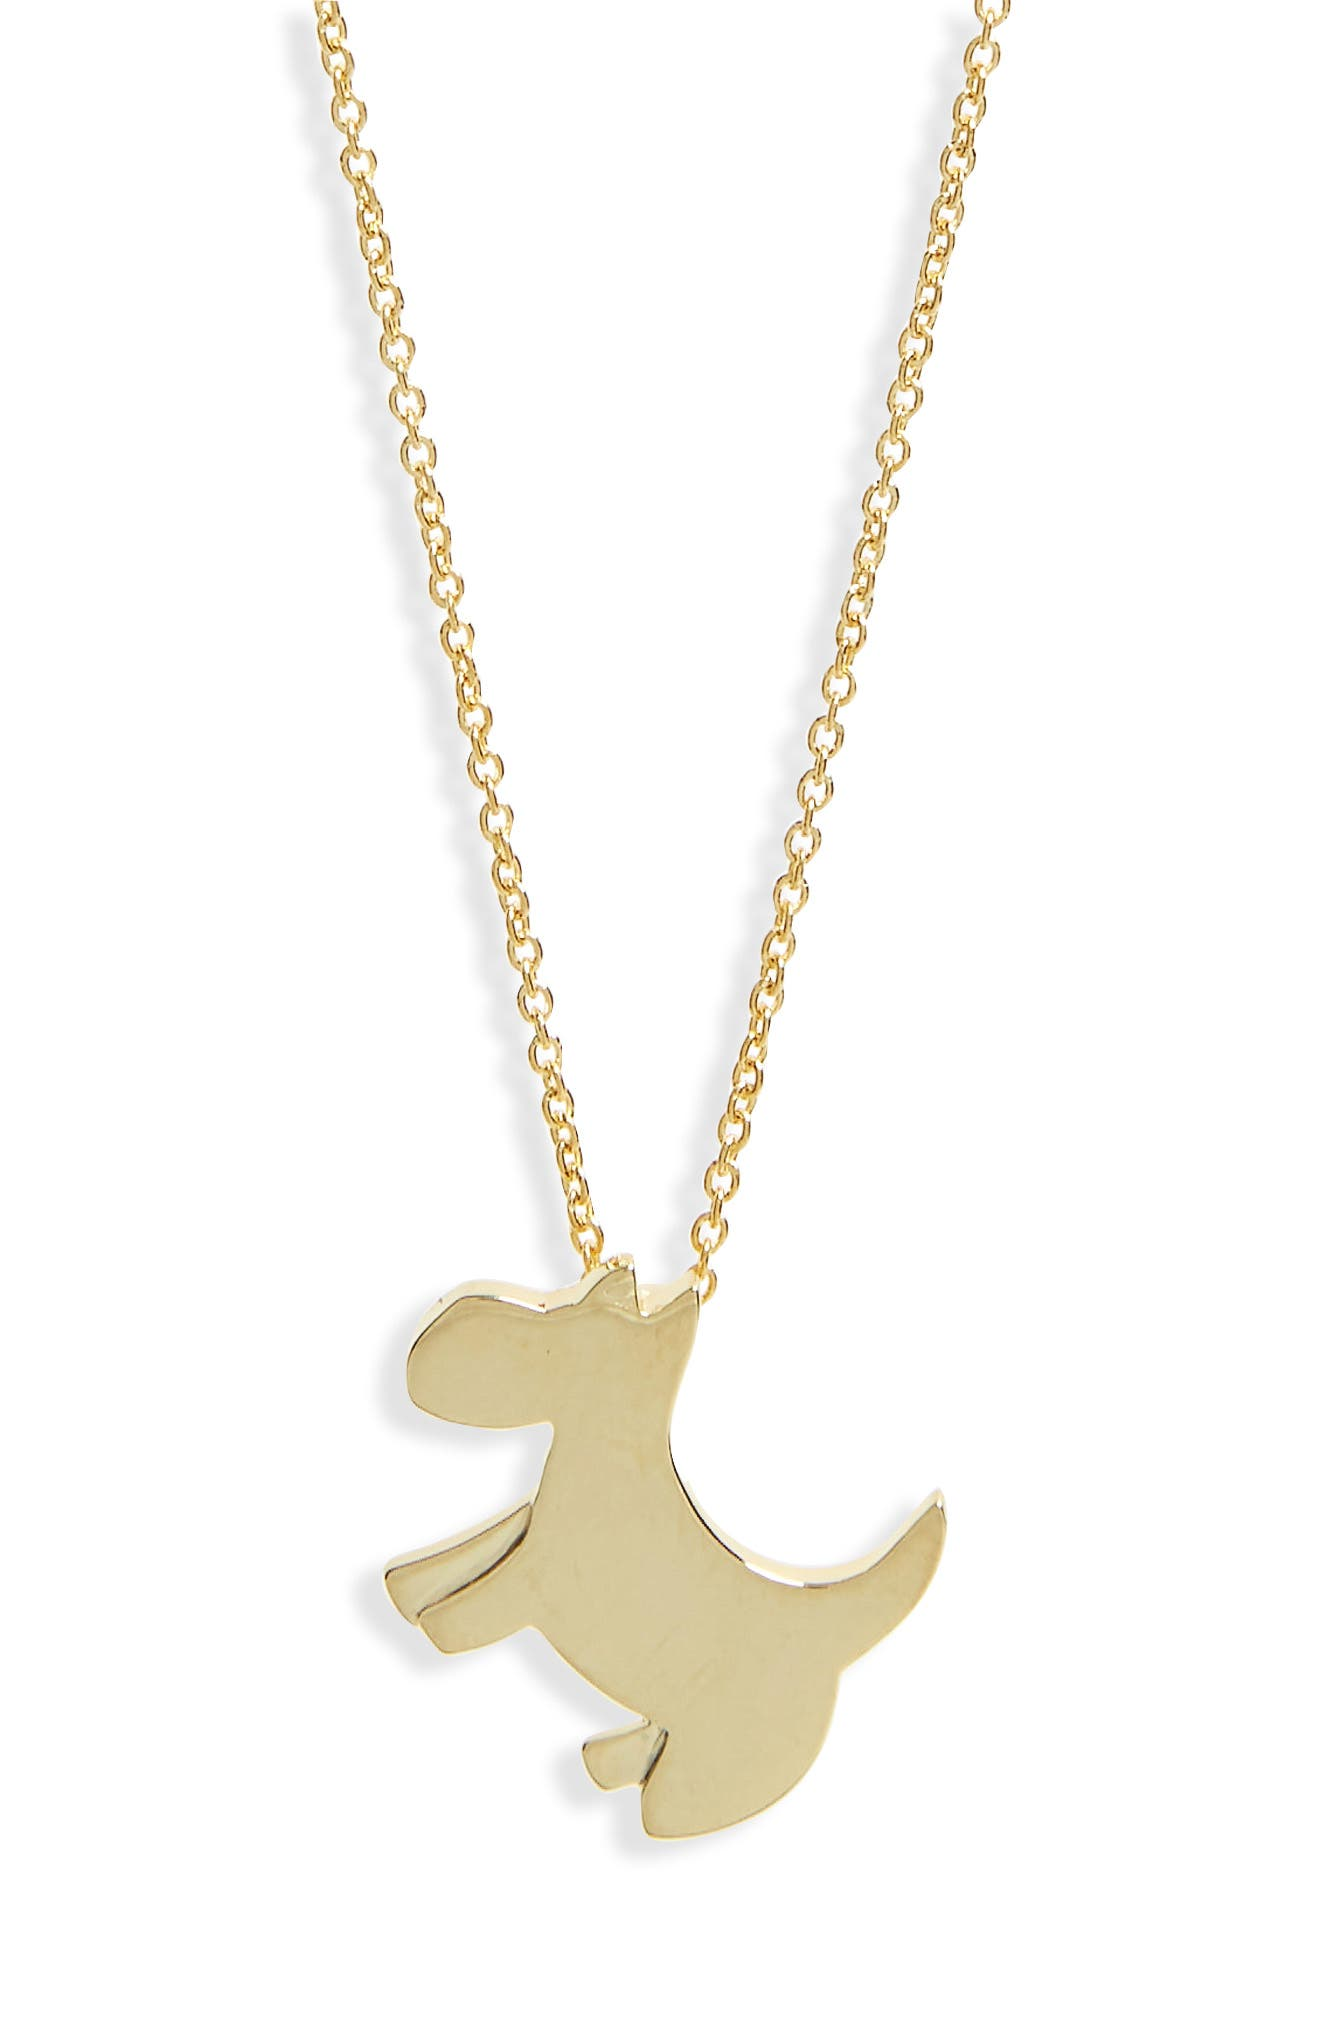 Scottie Dog Necklace,                             Main thumbnail 1, color,                             Yellow Gold